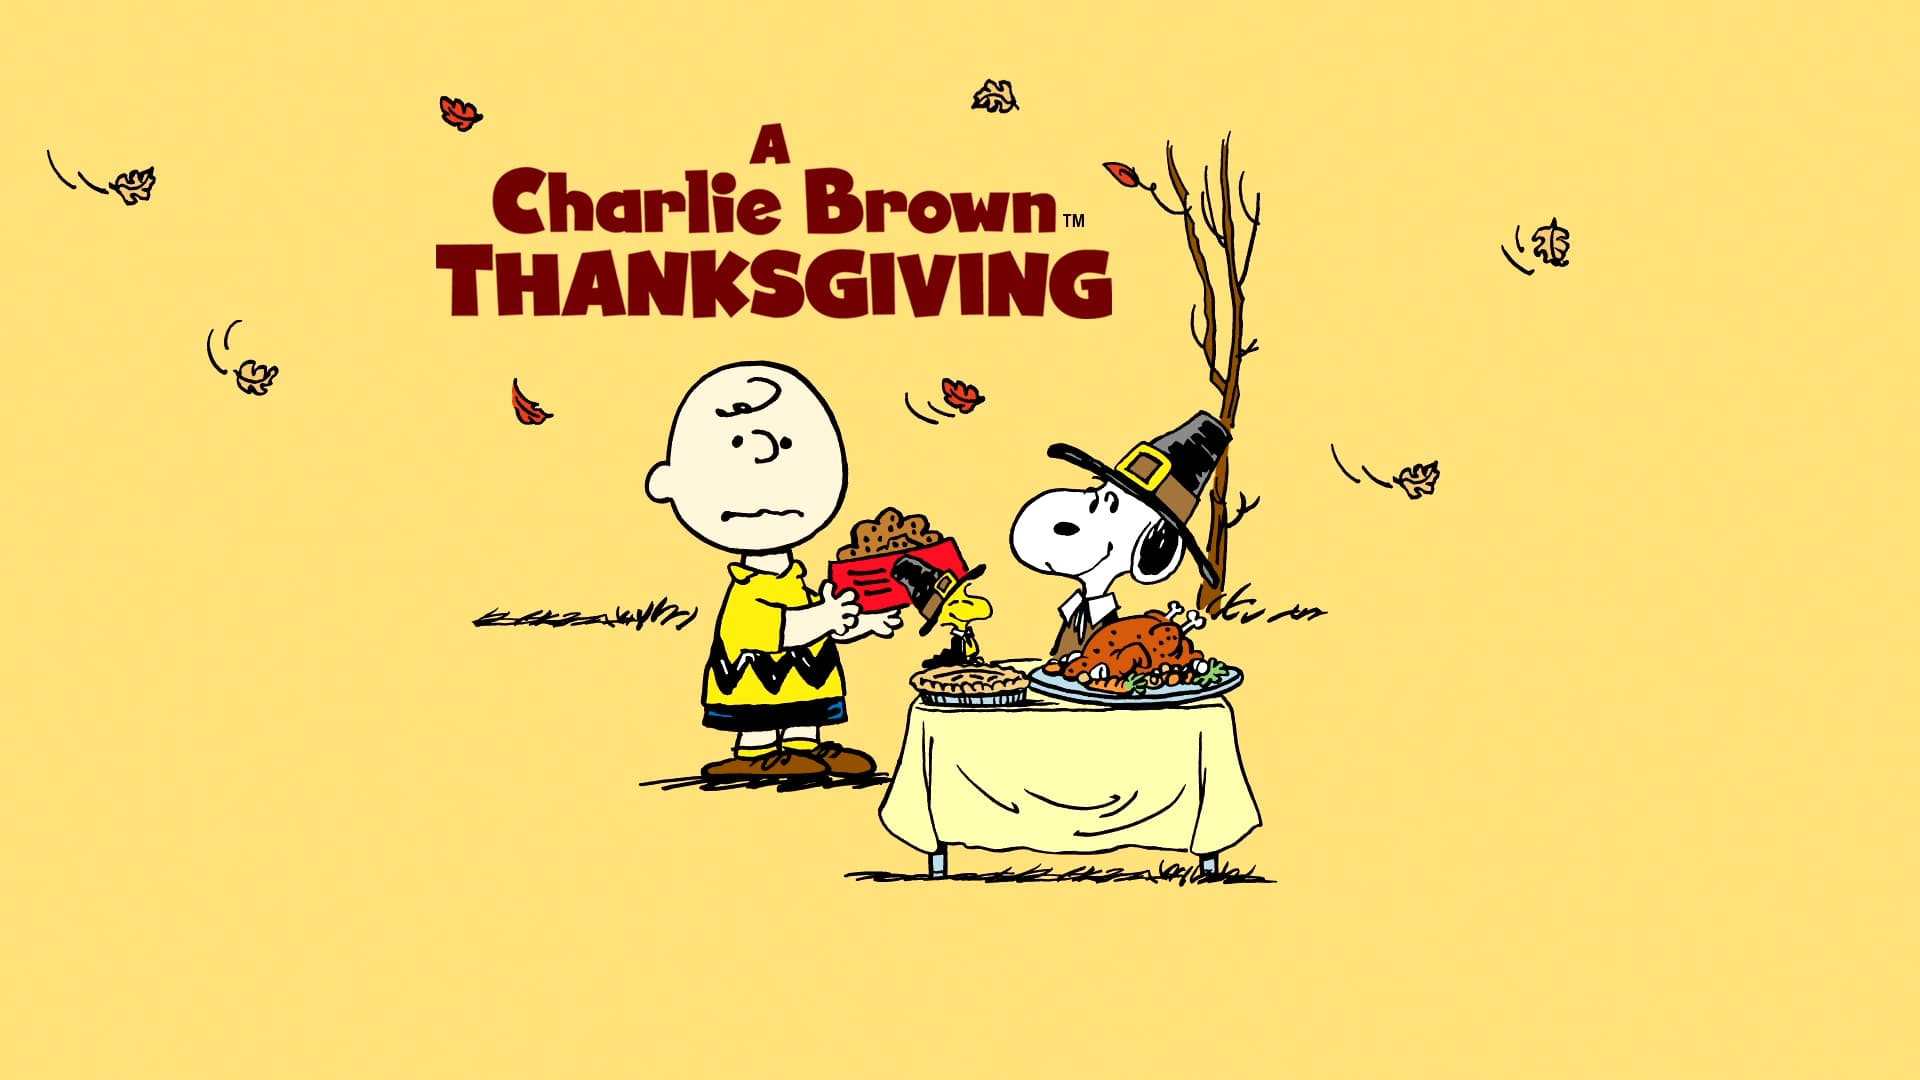 Regarder A Charlie Brown Thanksgiving en streaming gratuit